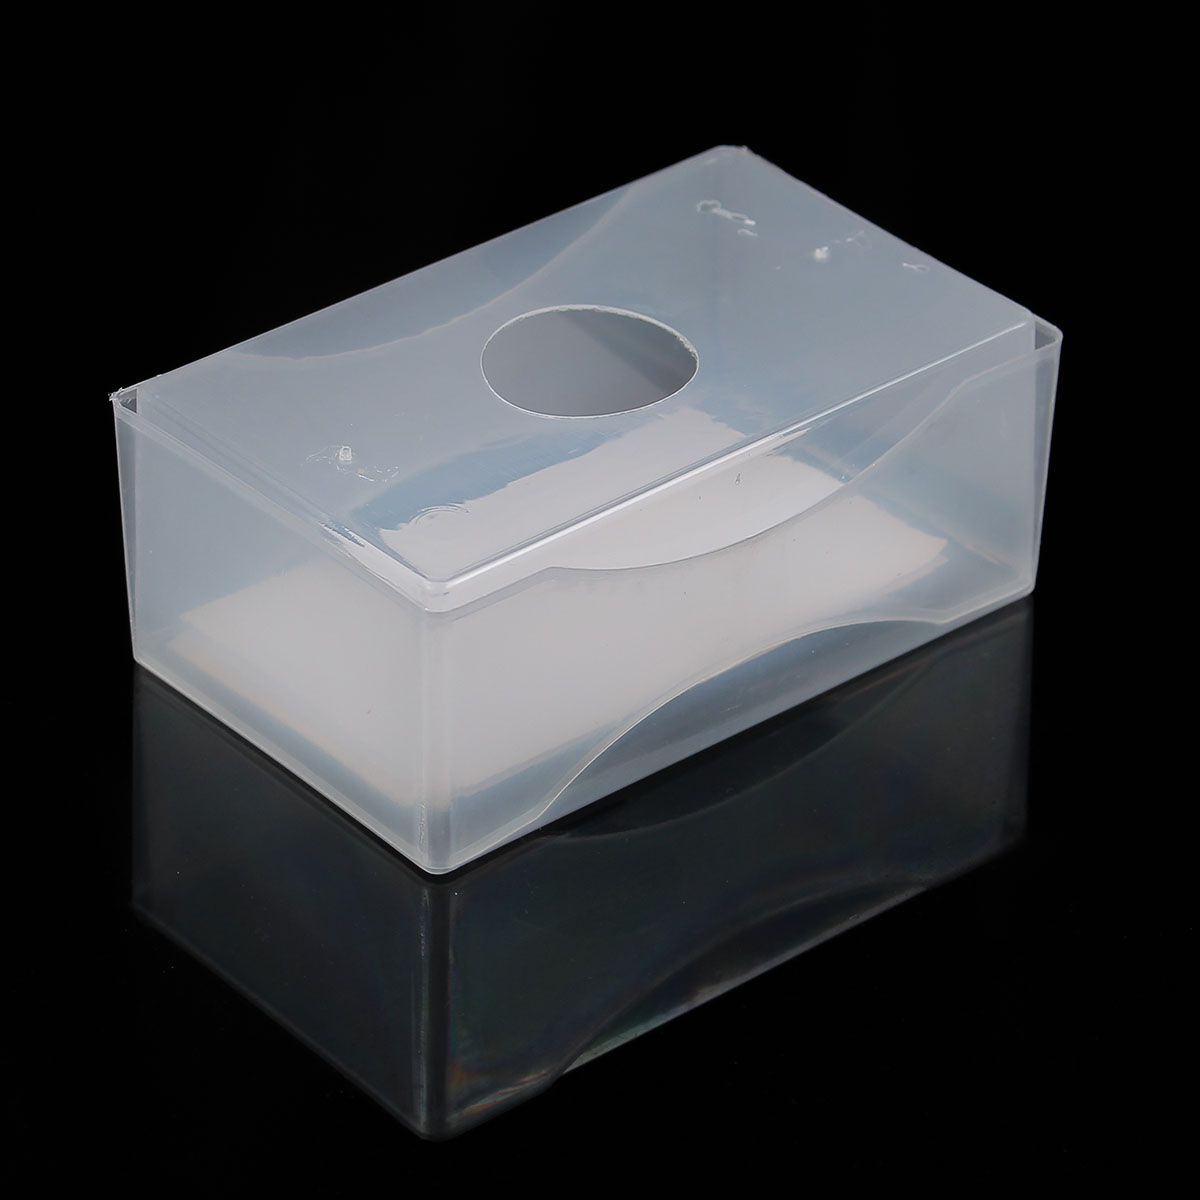 1pcs business card boxes clear plastic craft parts beads box holder container alex nld. Black Bedroom Furniture Sets. Home Design Ideas